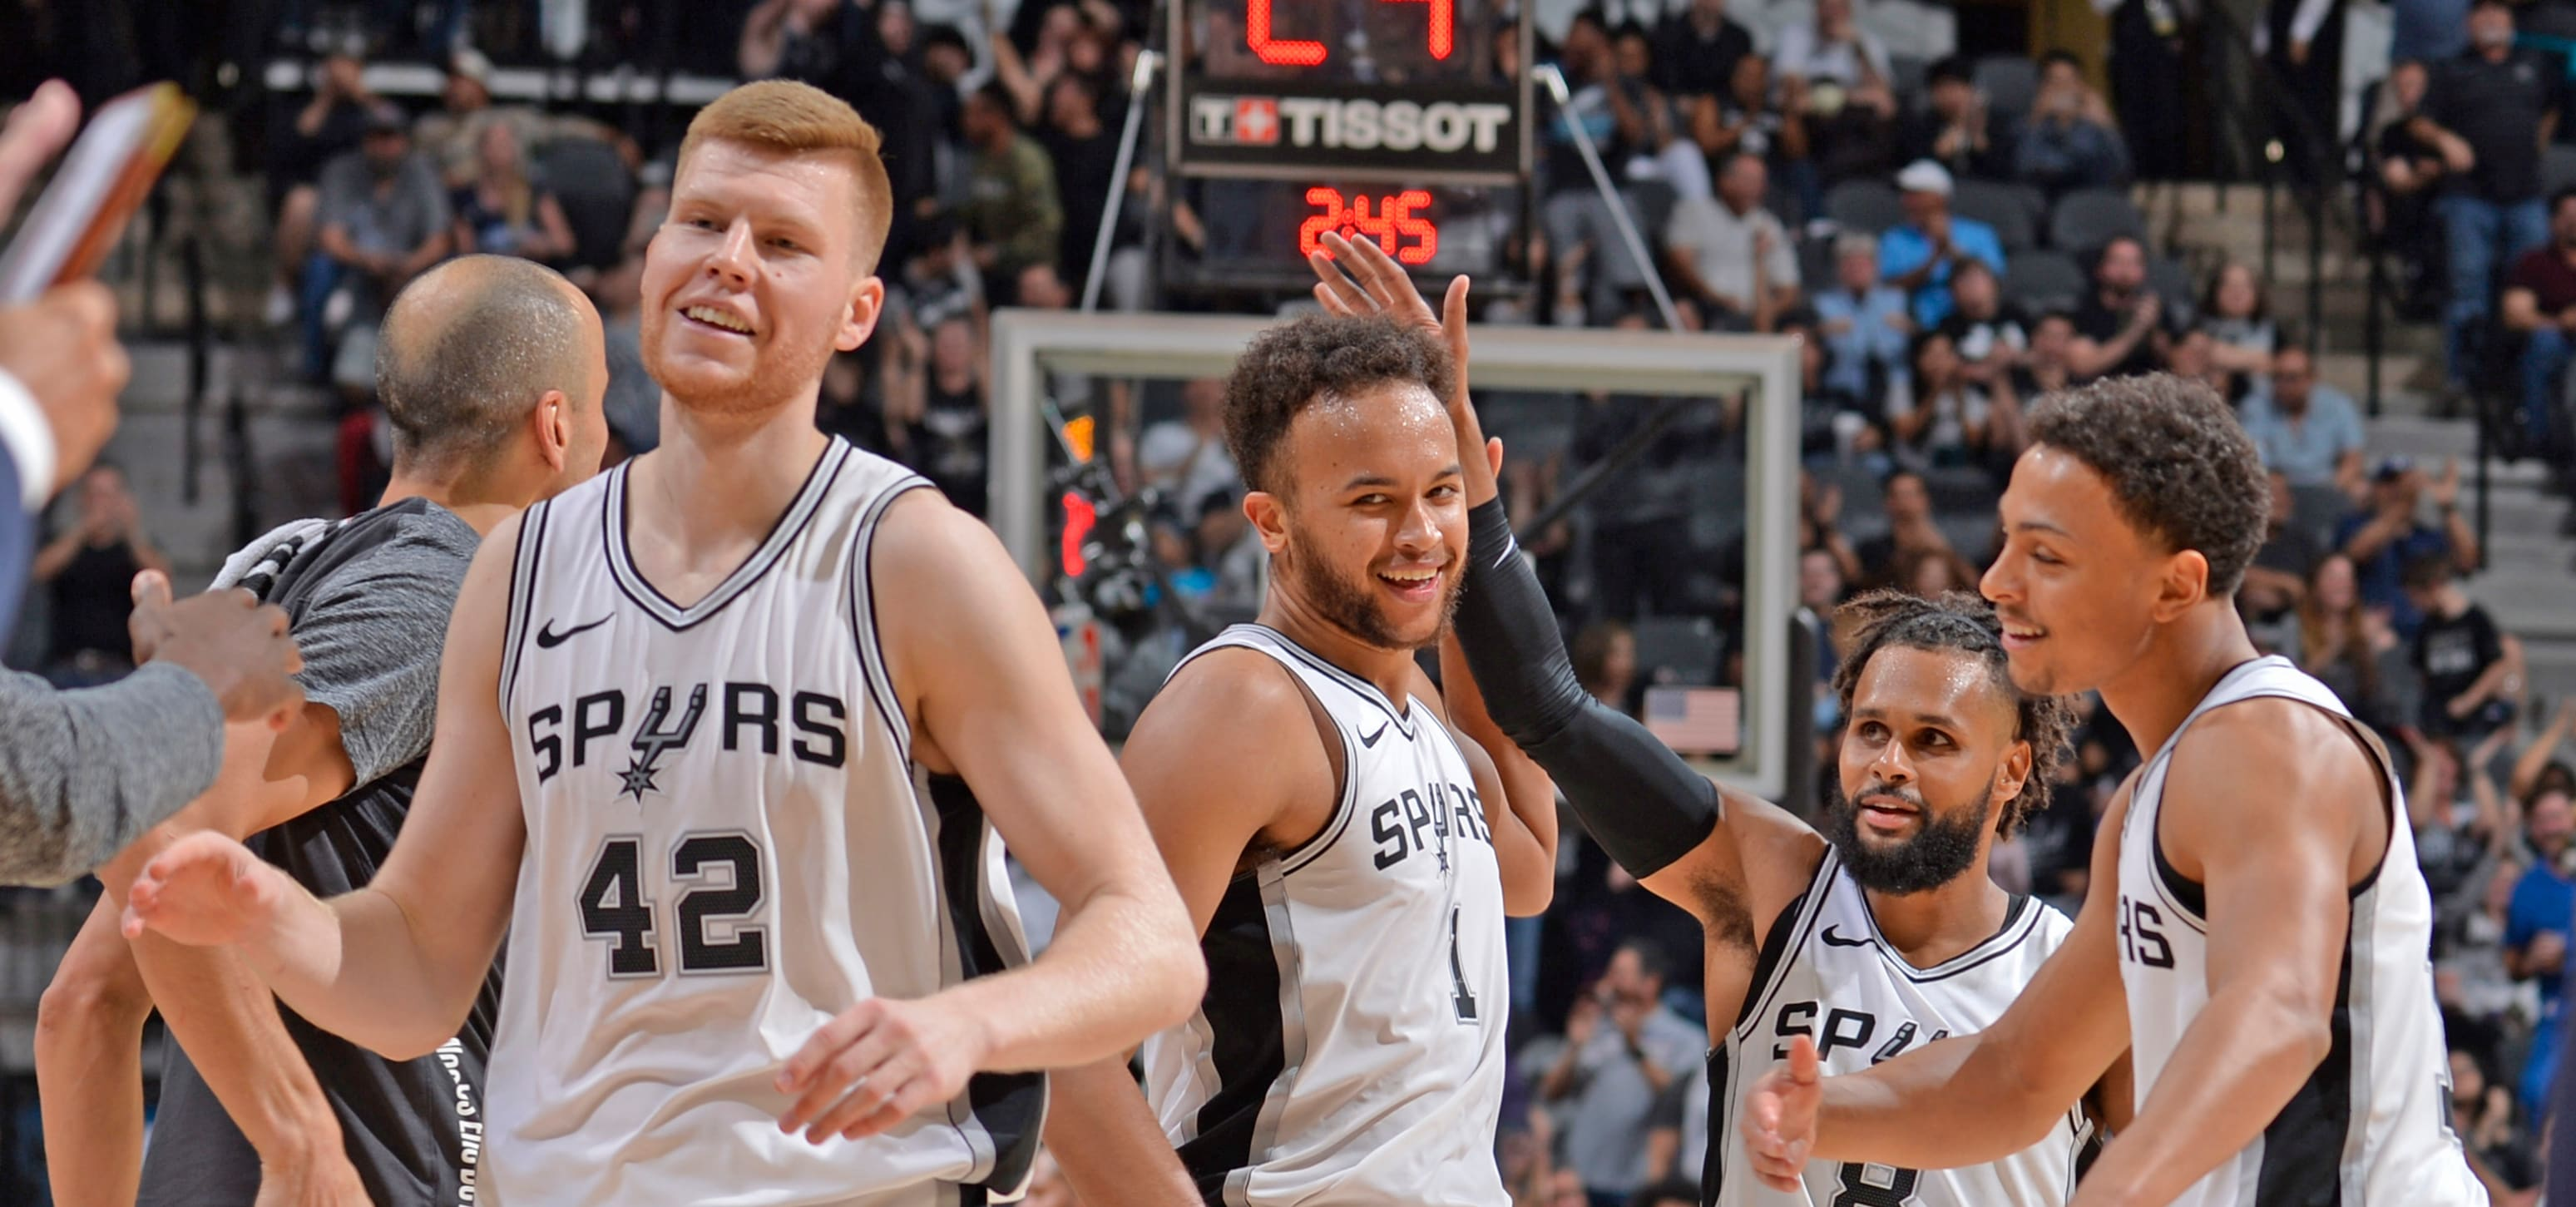 Western Conference Playoff Update  Wolves Move To 5th With Spurs' Win Over Pelicans